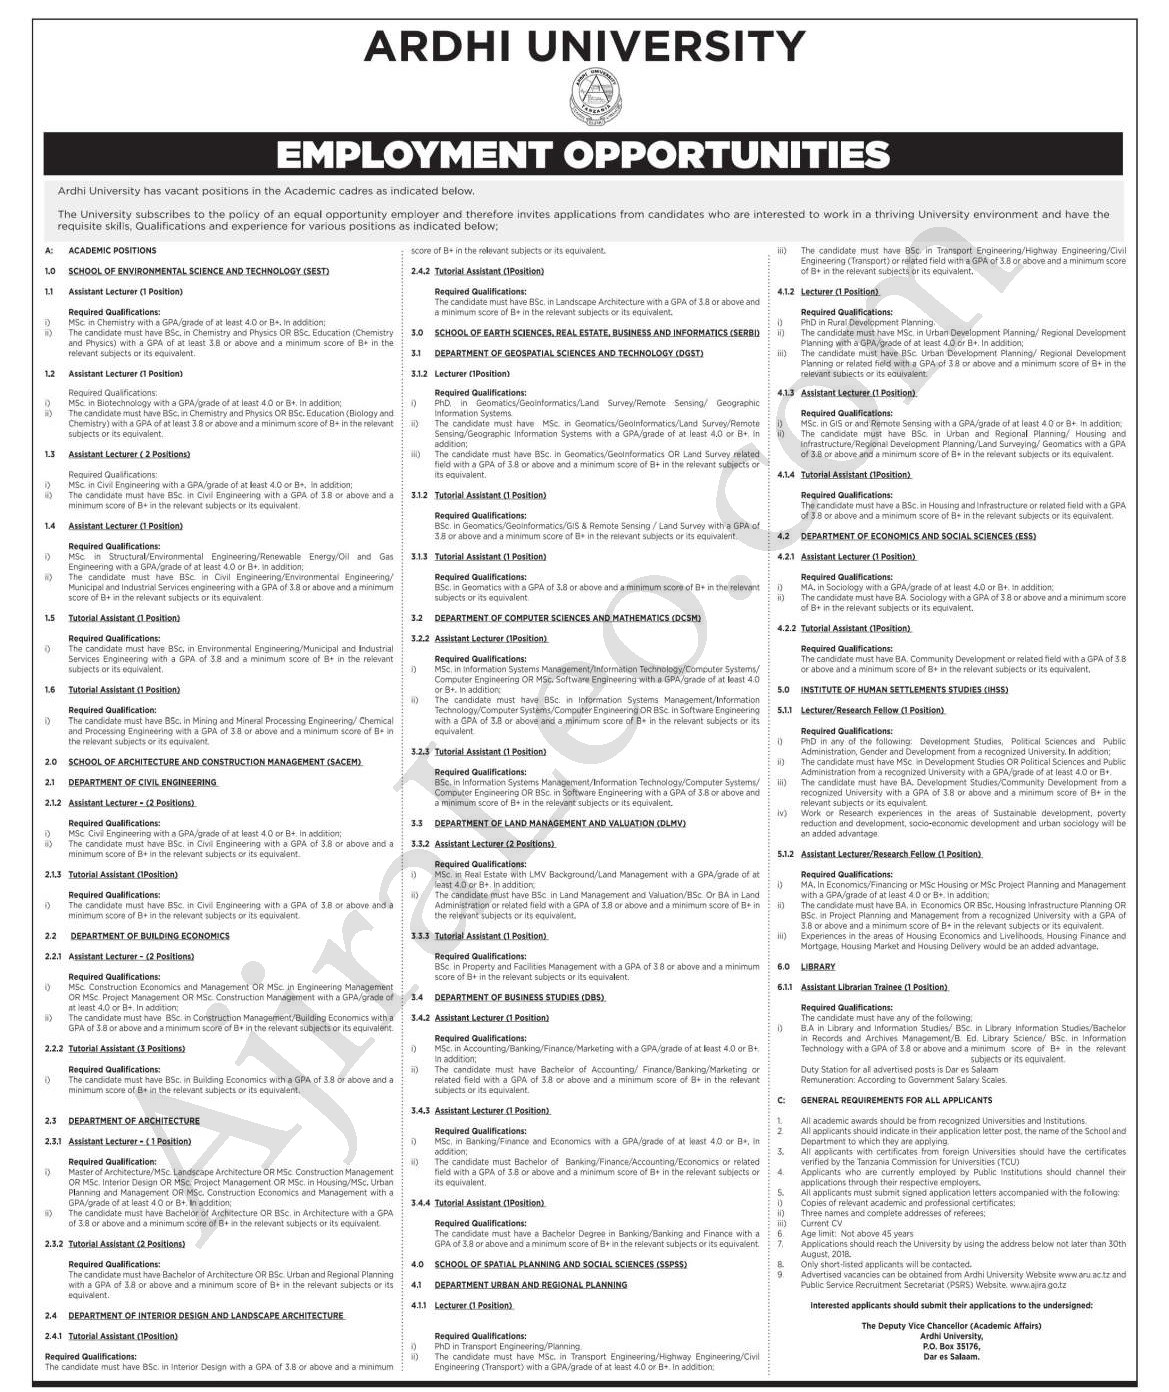 Tanzania Jobs 2018: 39 Employment Opportunities at The Ardhi ... on